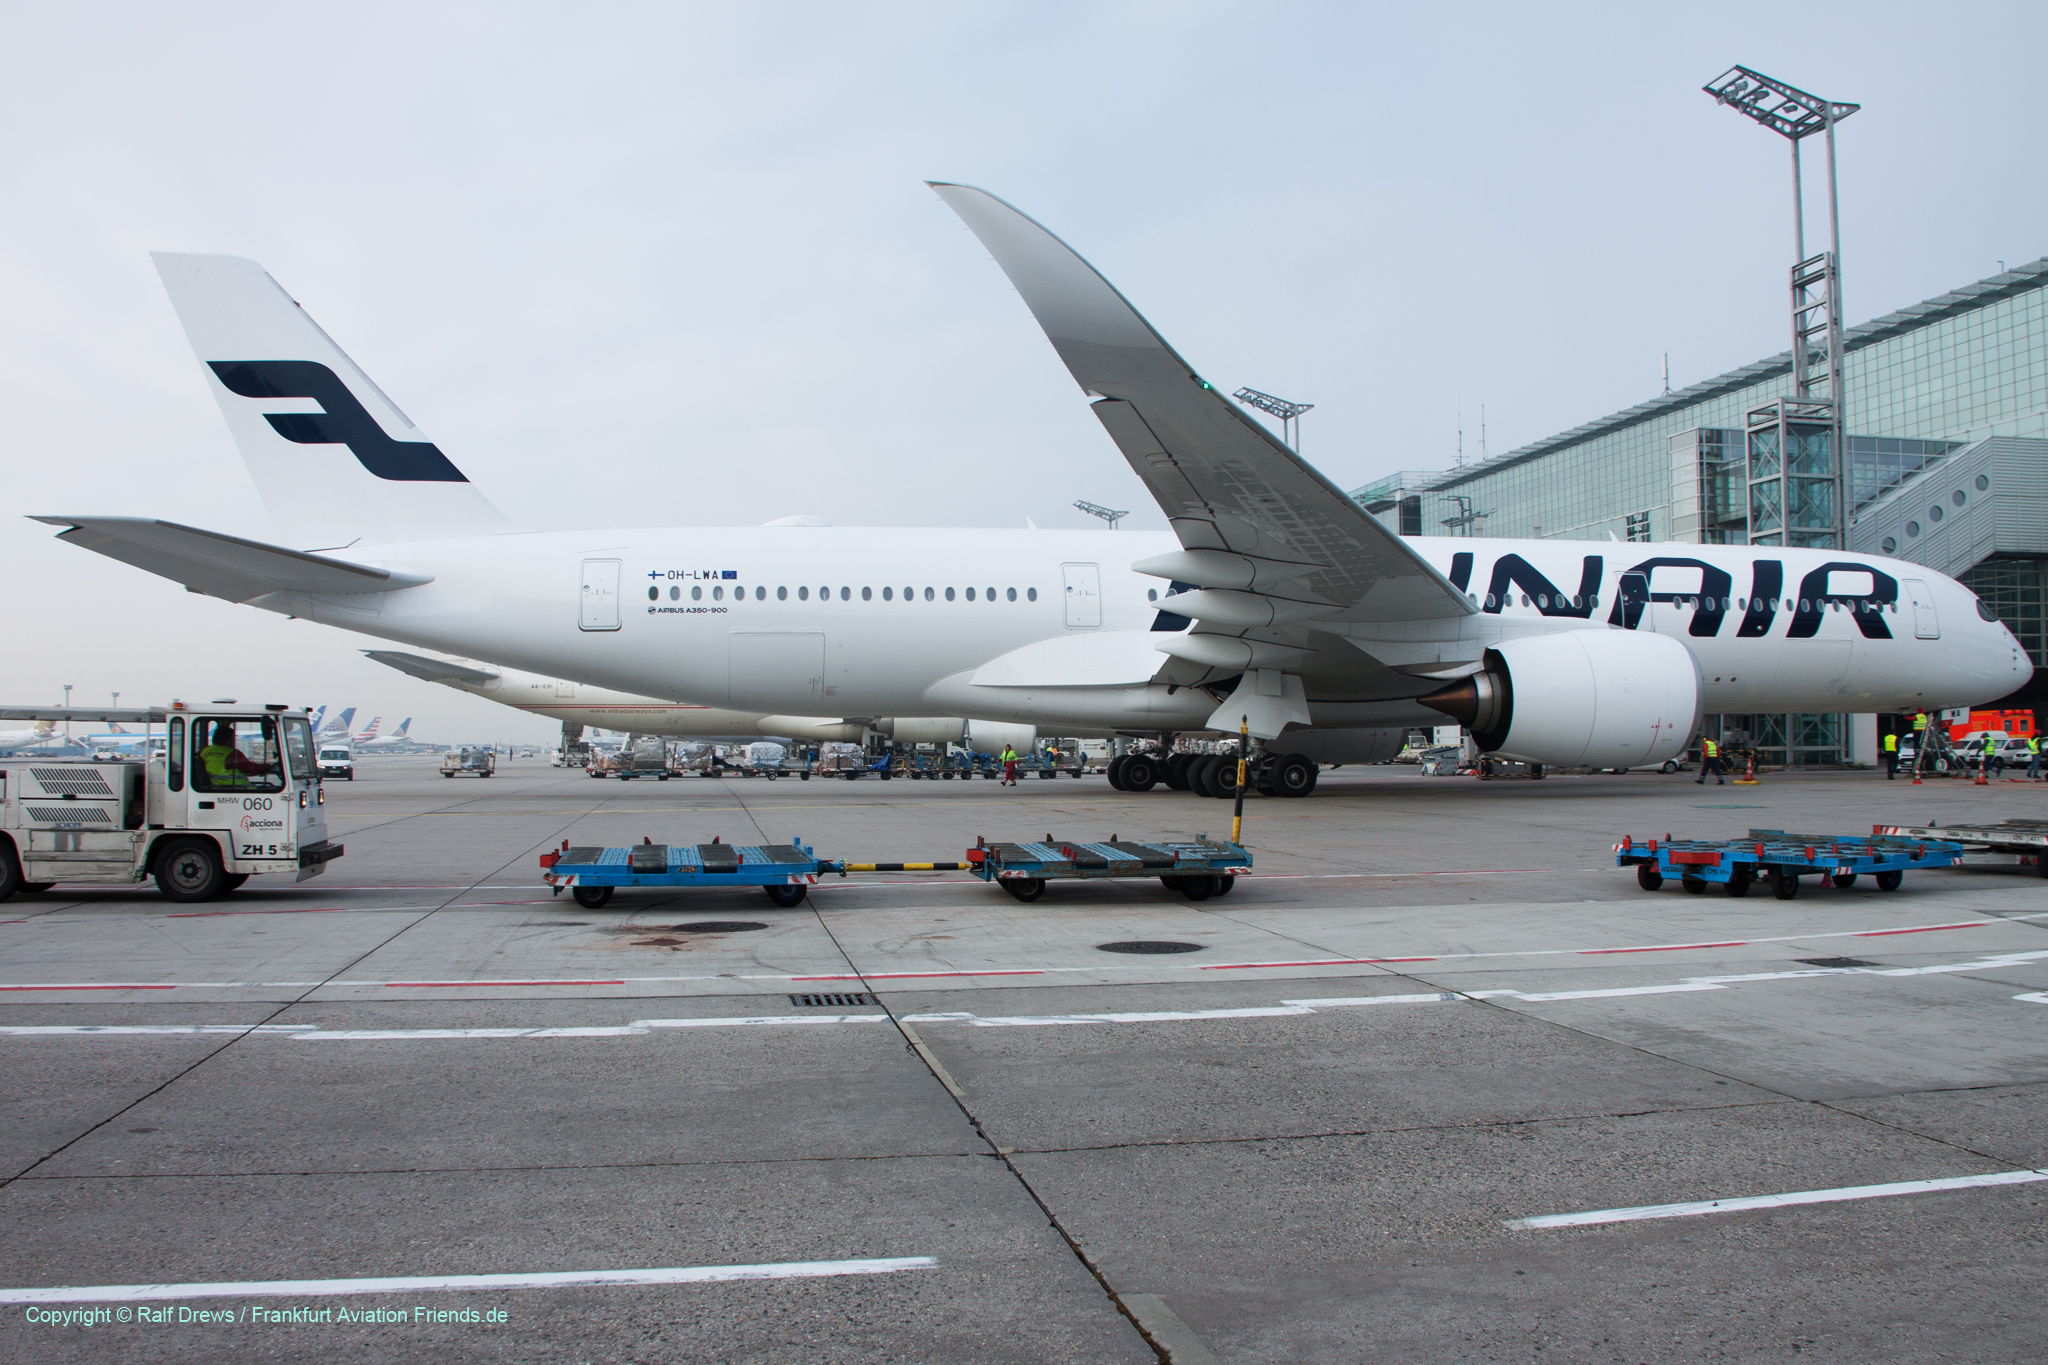 19.10.2015: Finnair A350 at Frankfurt